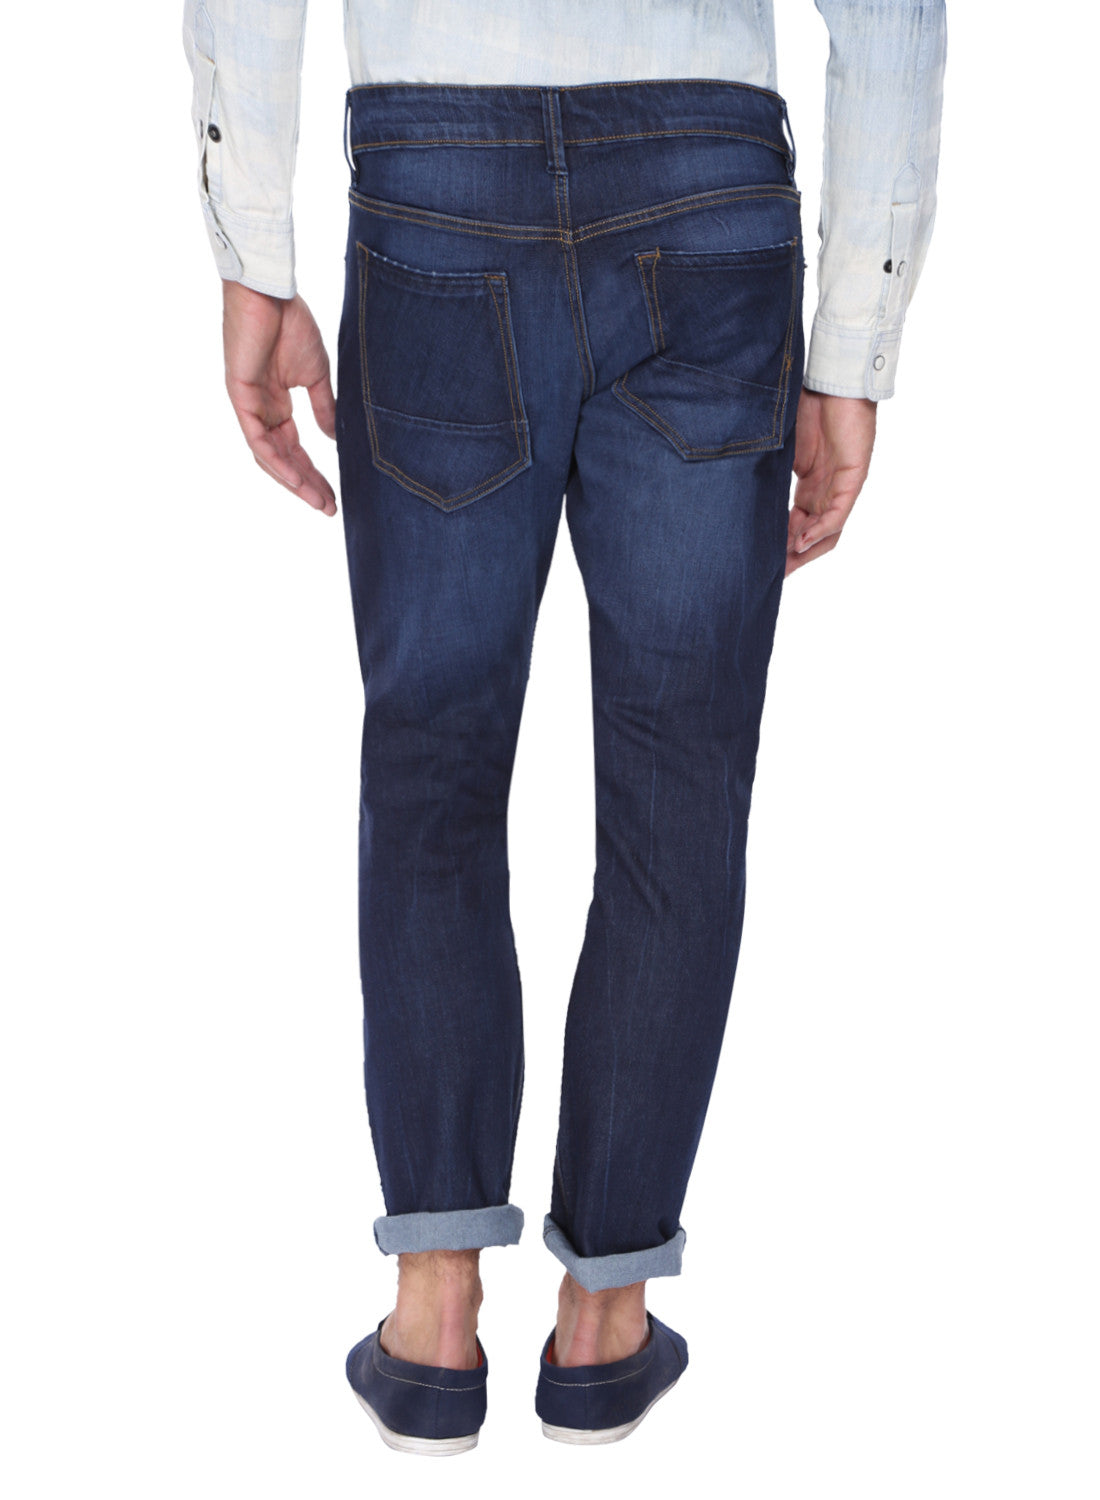 Core regular fit jeans - Ultra Fine wash